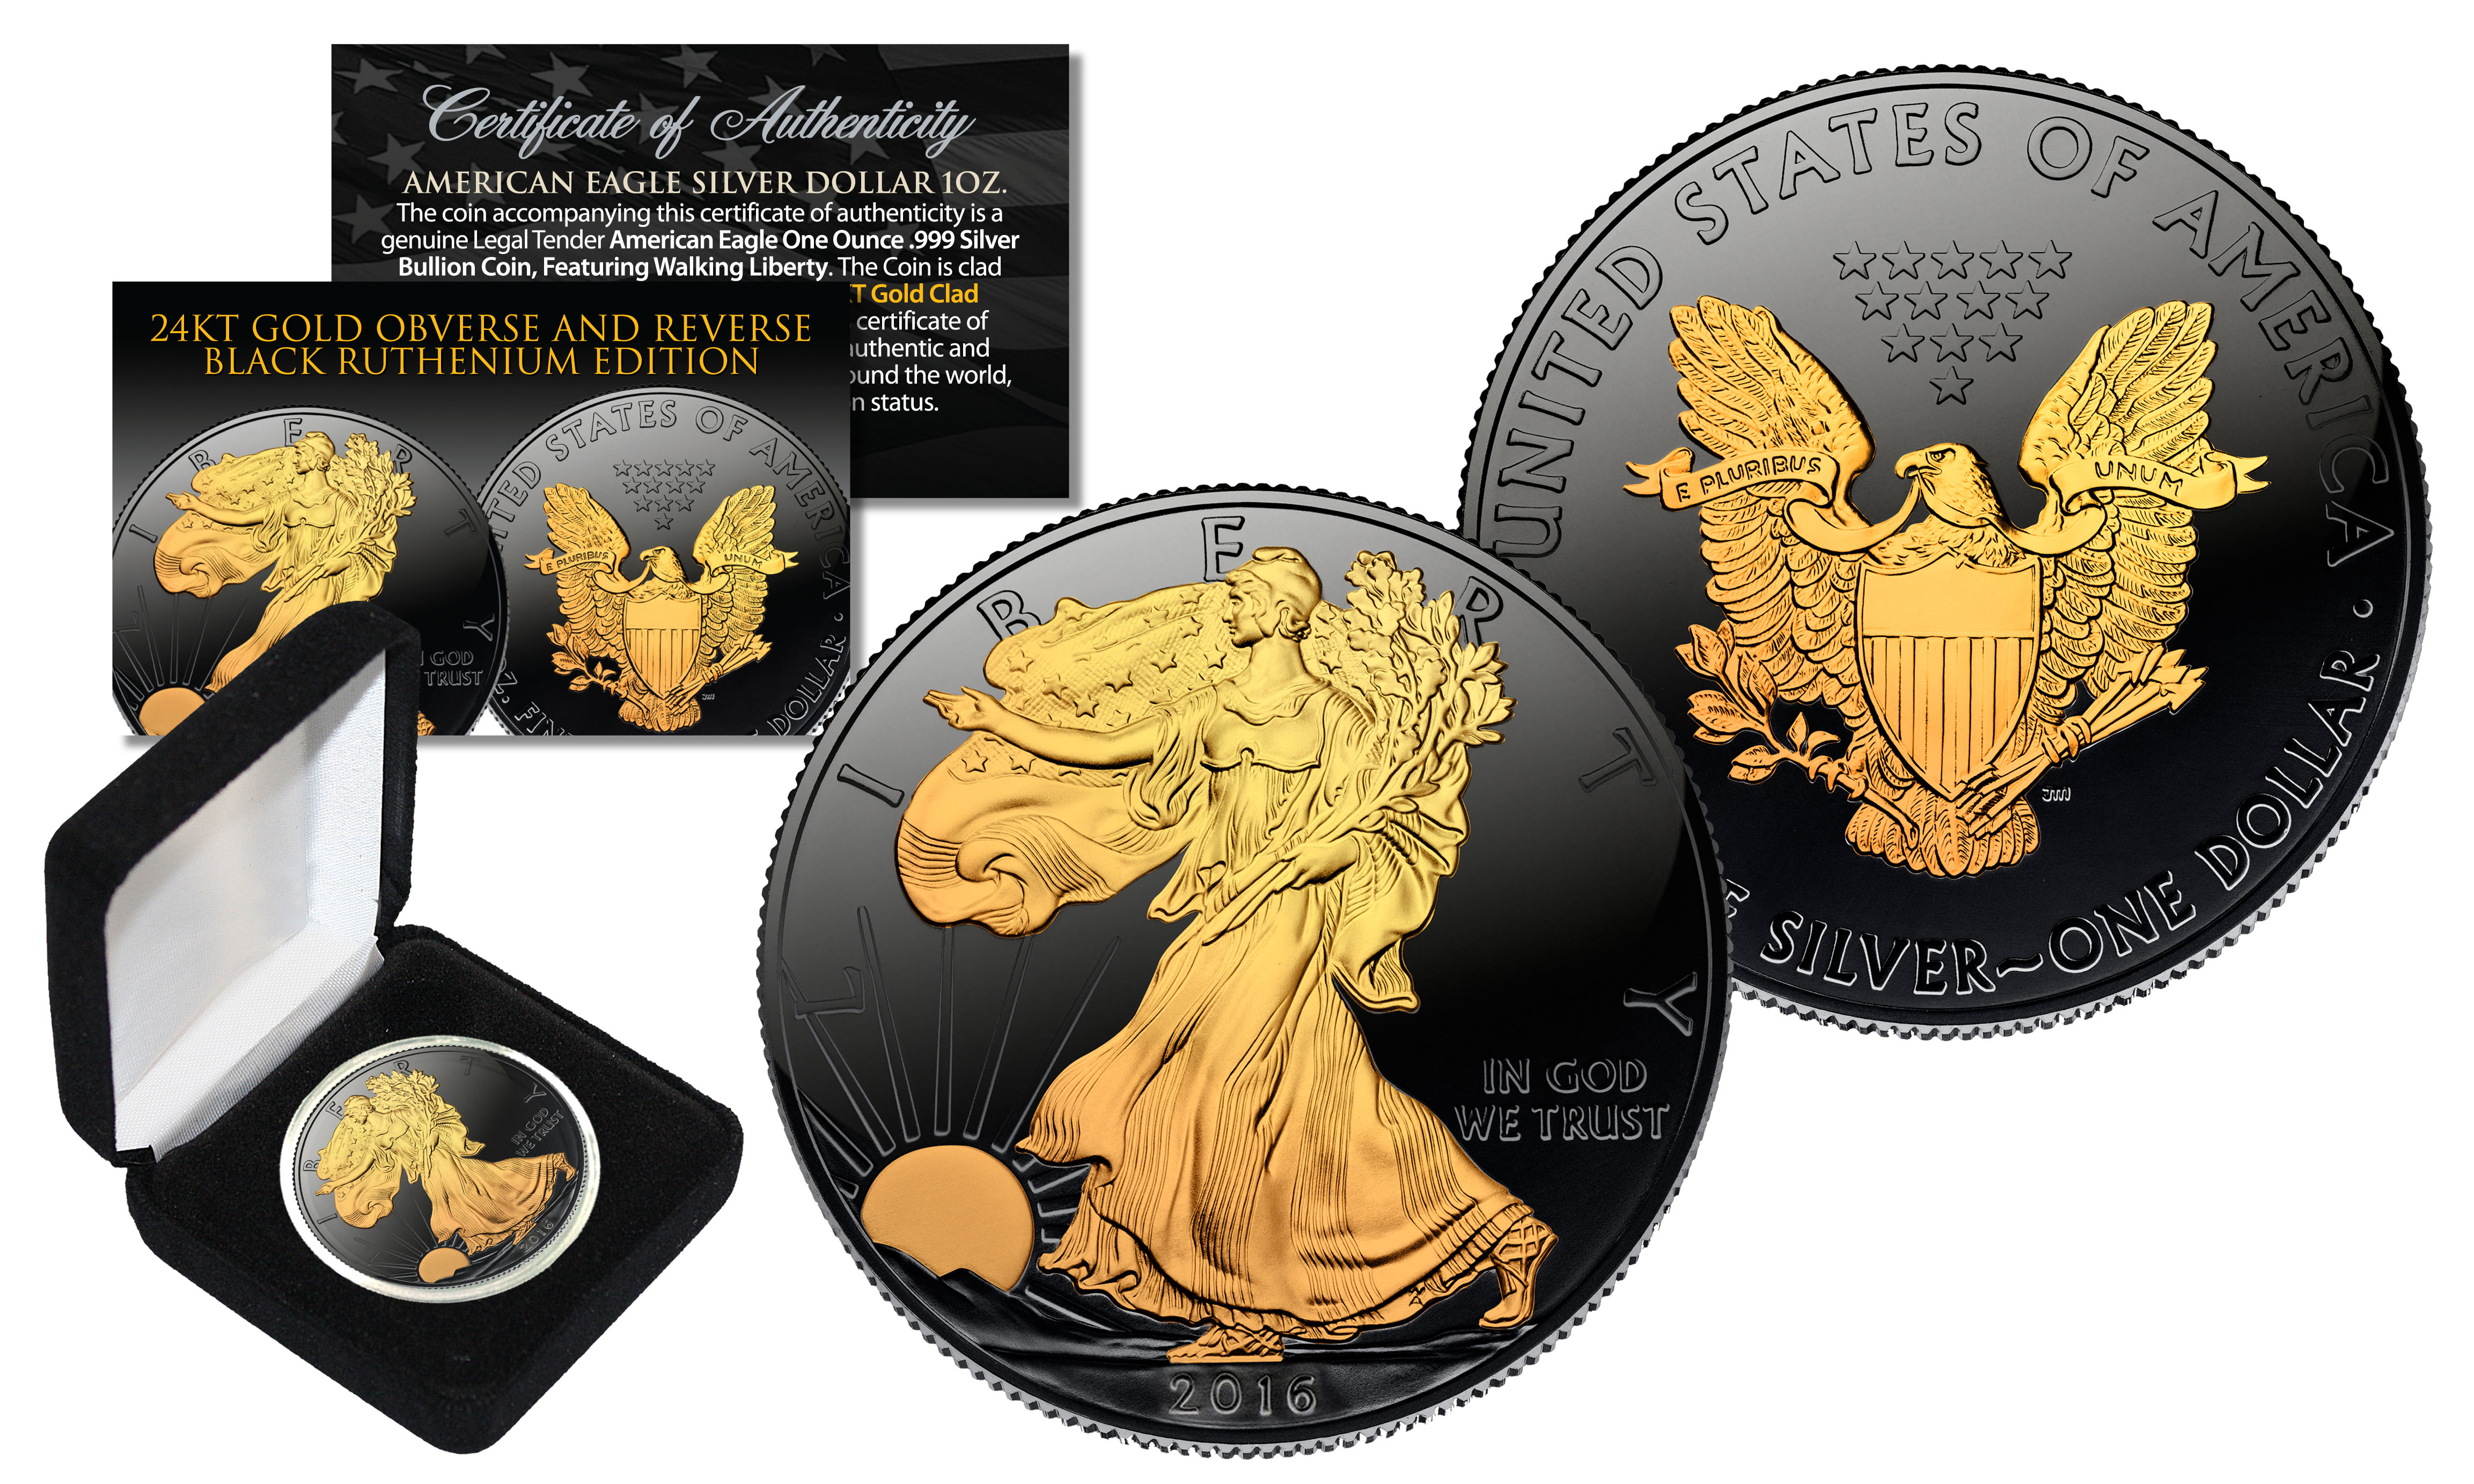 Black Ruthenium 1 Oz Silver 2016 American Eagle U S Coin